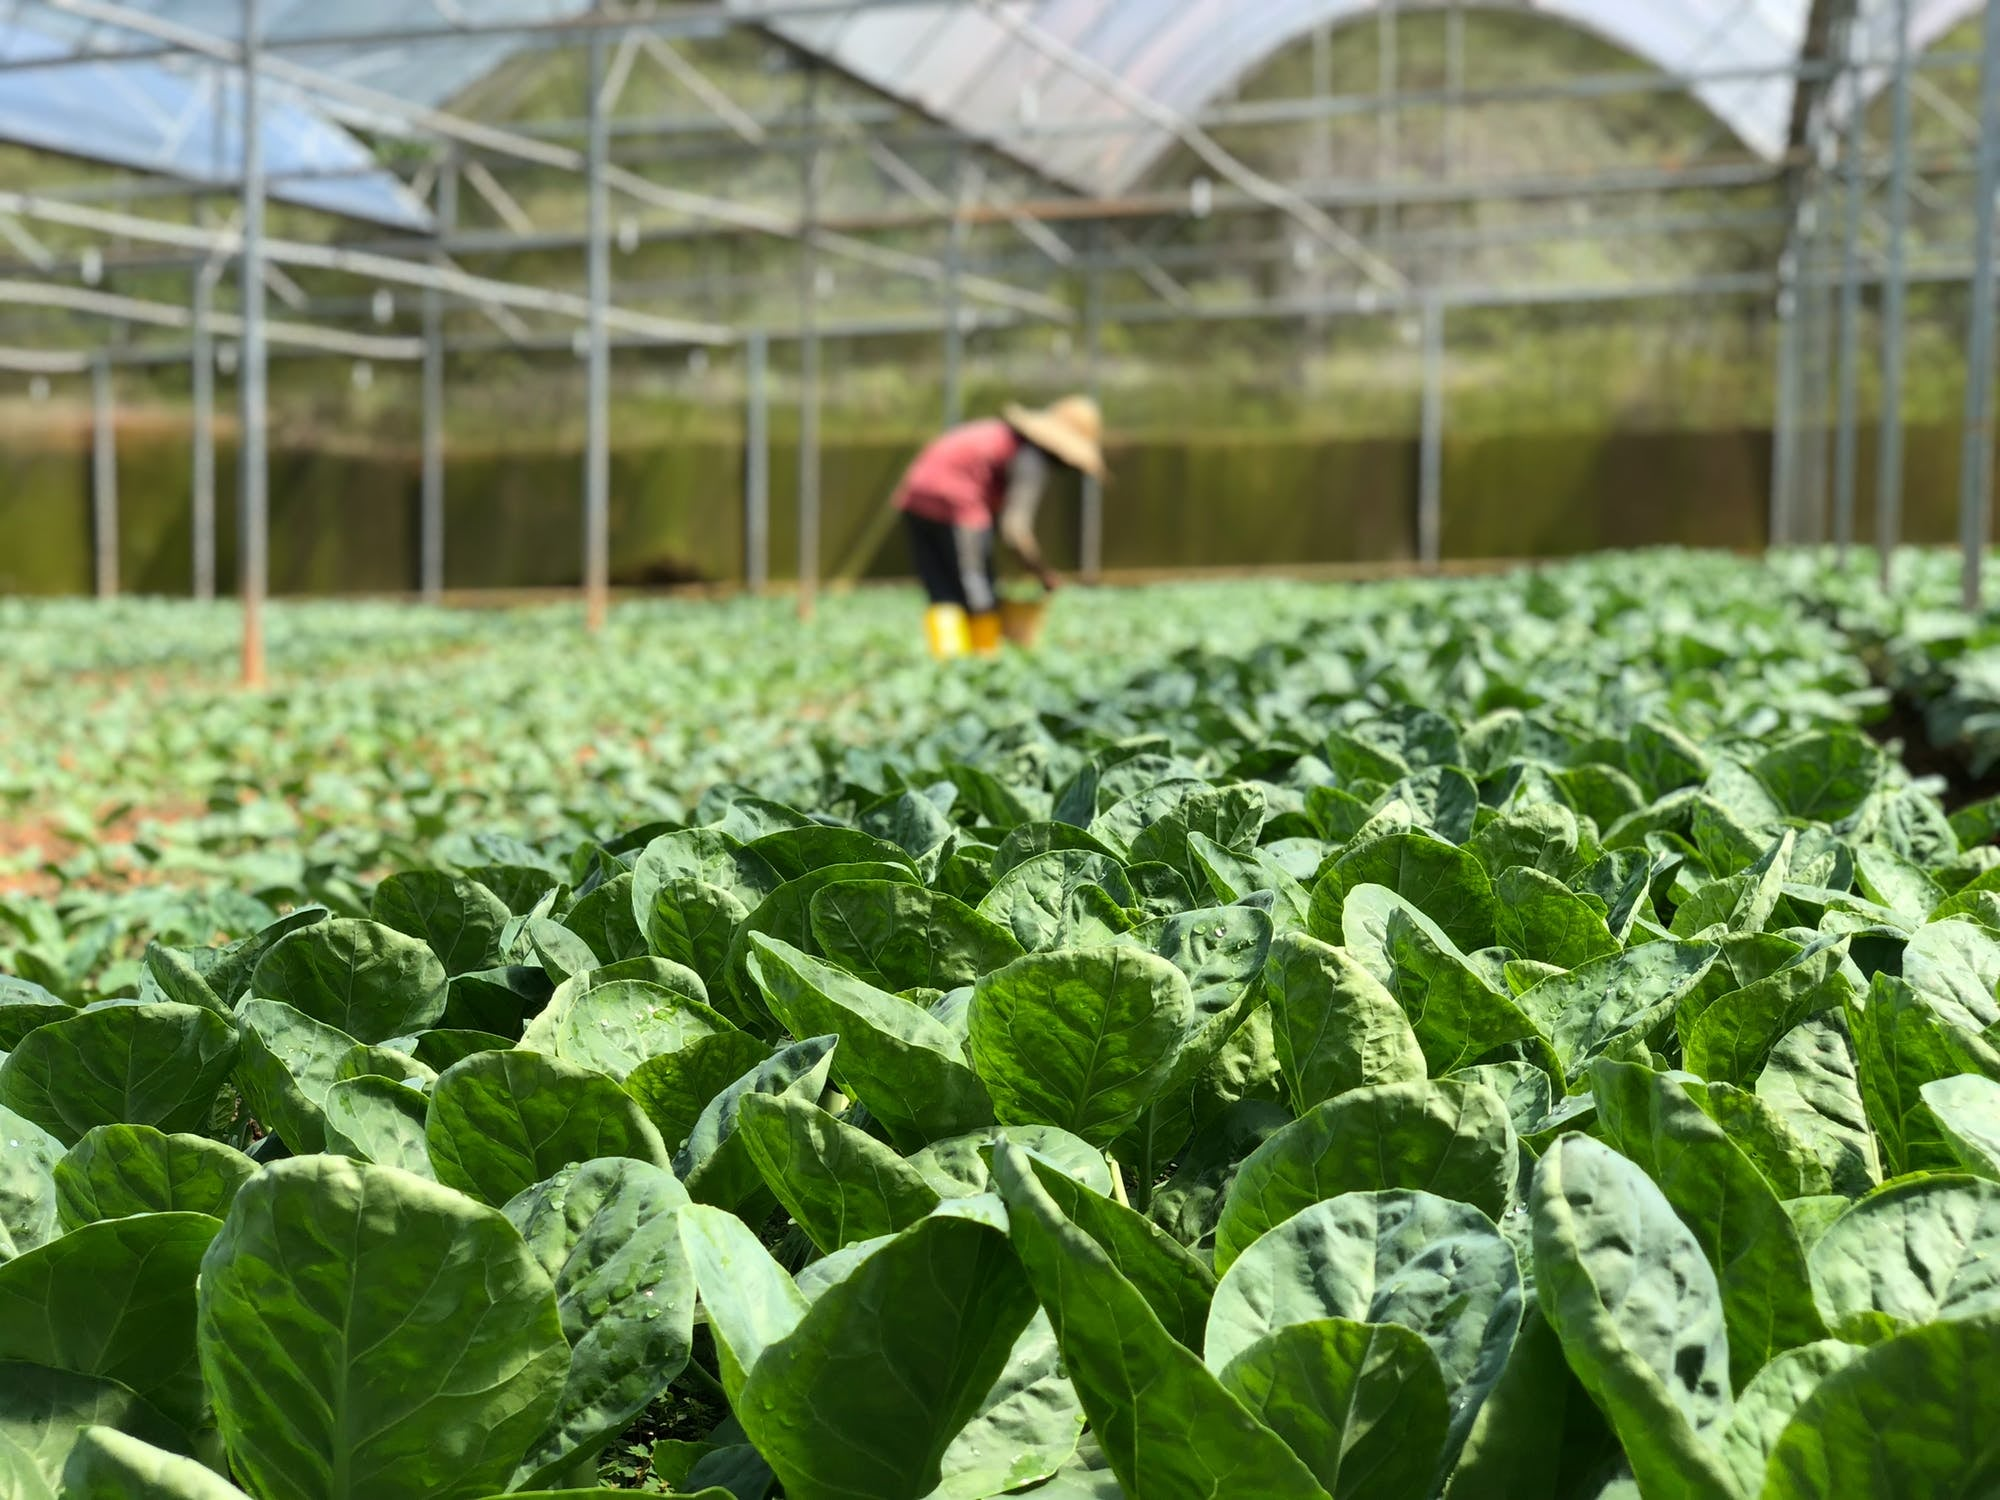 A new path to recruit foreign horticulture workers into Australia